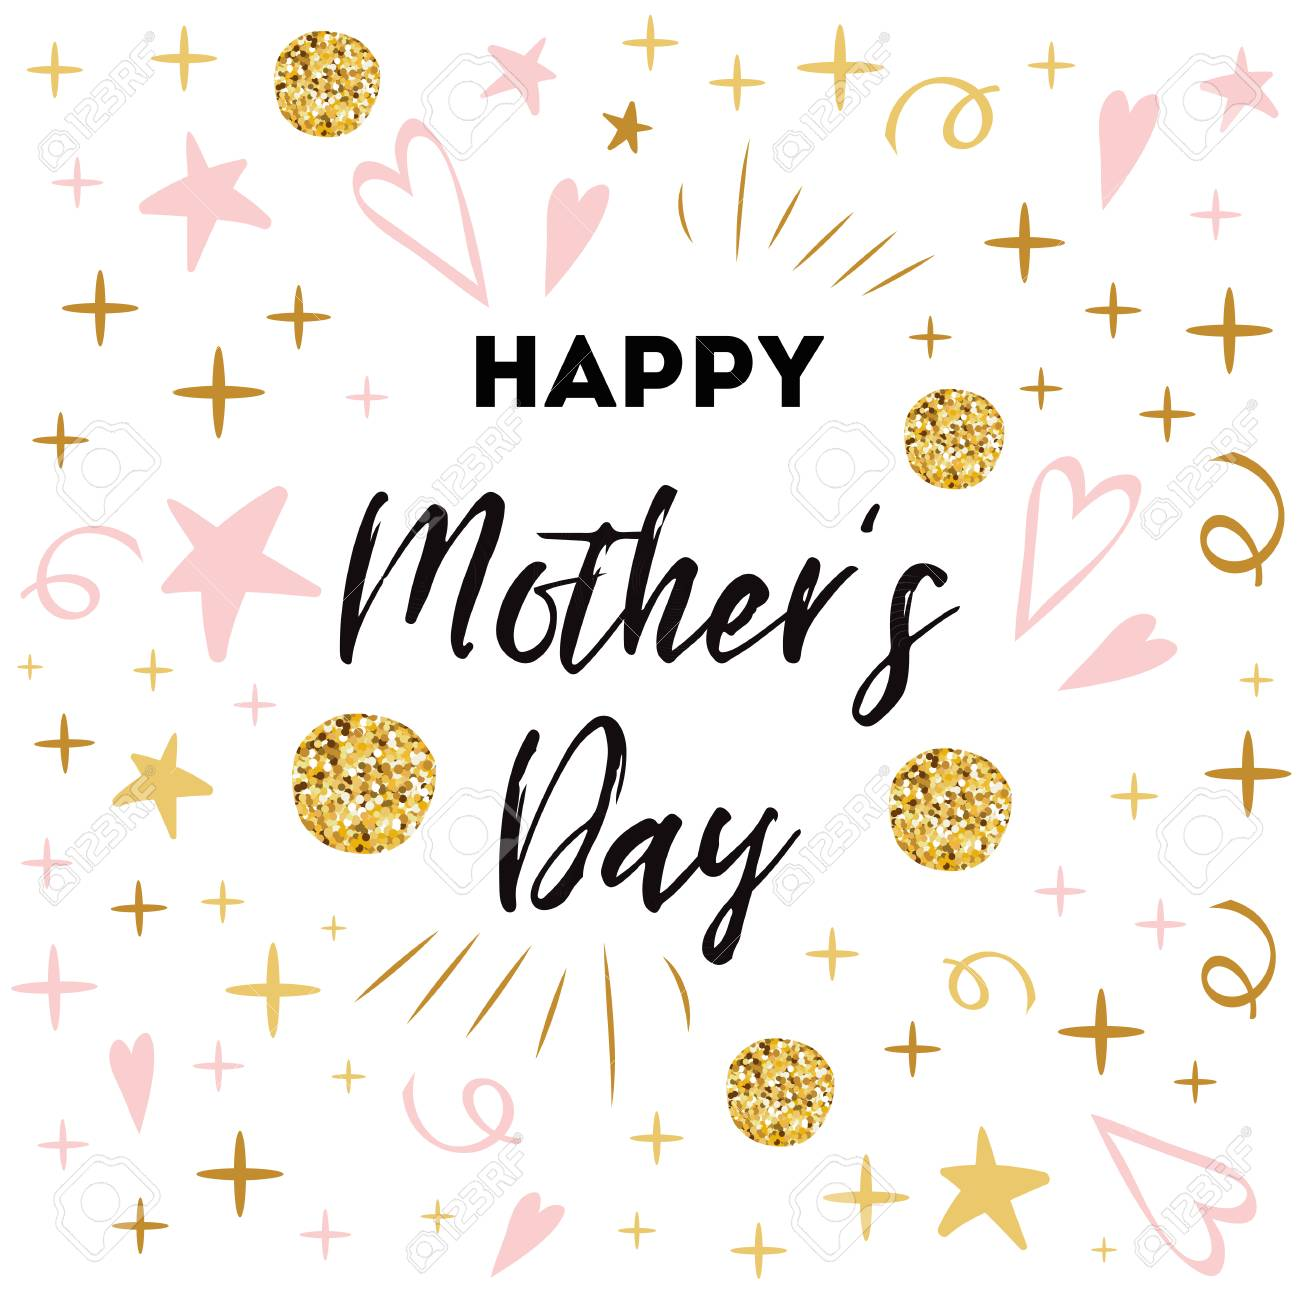 graphic relating to Happy Mothers Day Printable called Moms Working day vector greeting card. Terms pleased moms working day Intimate..